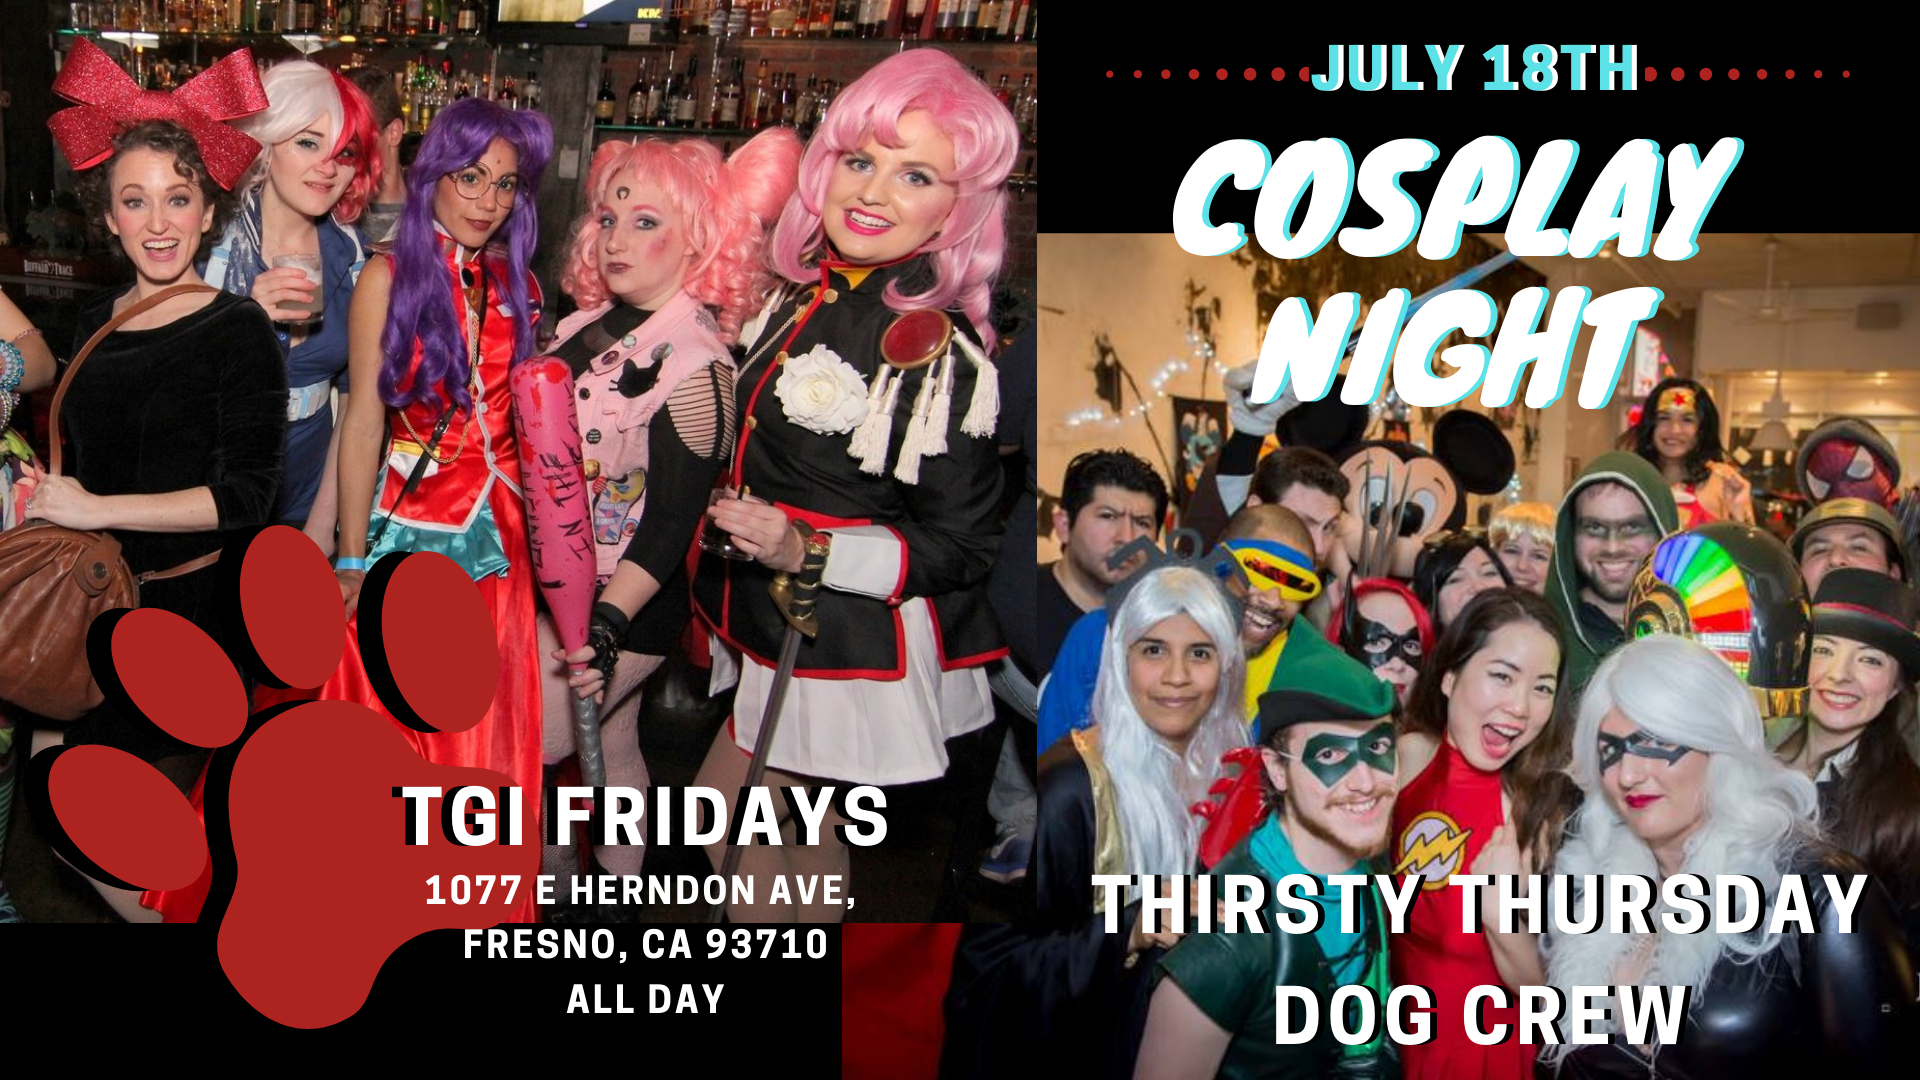 Cosplay + Awesome Animal Cause = 1 Great Night to remember!   TGI Fridays is hosting a Cosplay Night and our Dog Crew was invited to earn kick back from the fun! At the least we will be visually dazzled while we dine and at most some of us may get in on the fun too! Hehehe. As always, all proceeds from this event will benefit Fresno Humane's medical fund helping sick or injured pets have access to great medical care. Help us help the homeless animals of Fresno County. We hope to see you there even if we don't recognize you. 🤪 Music will be poppin' with a DJ & you can join a Costume Contest too!